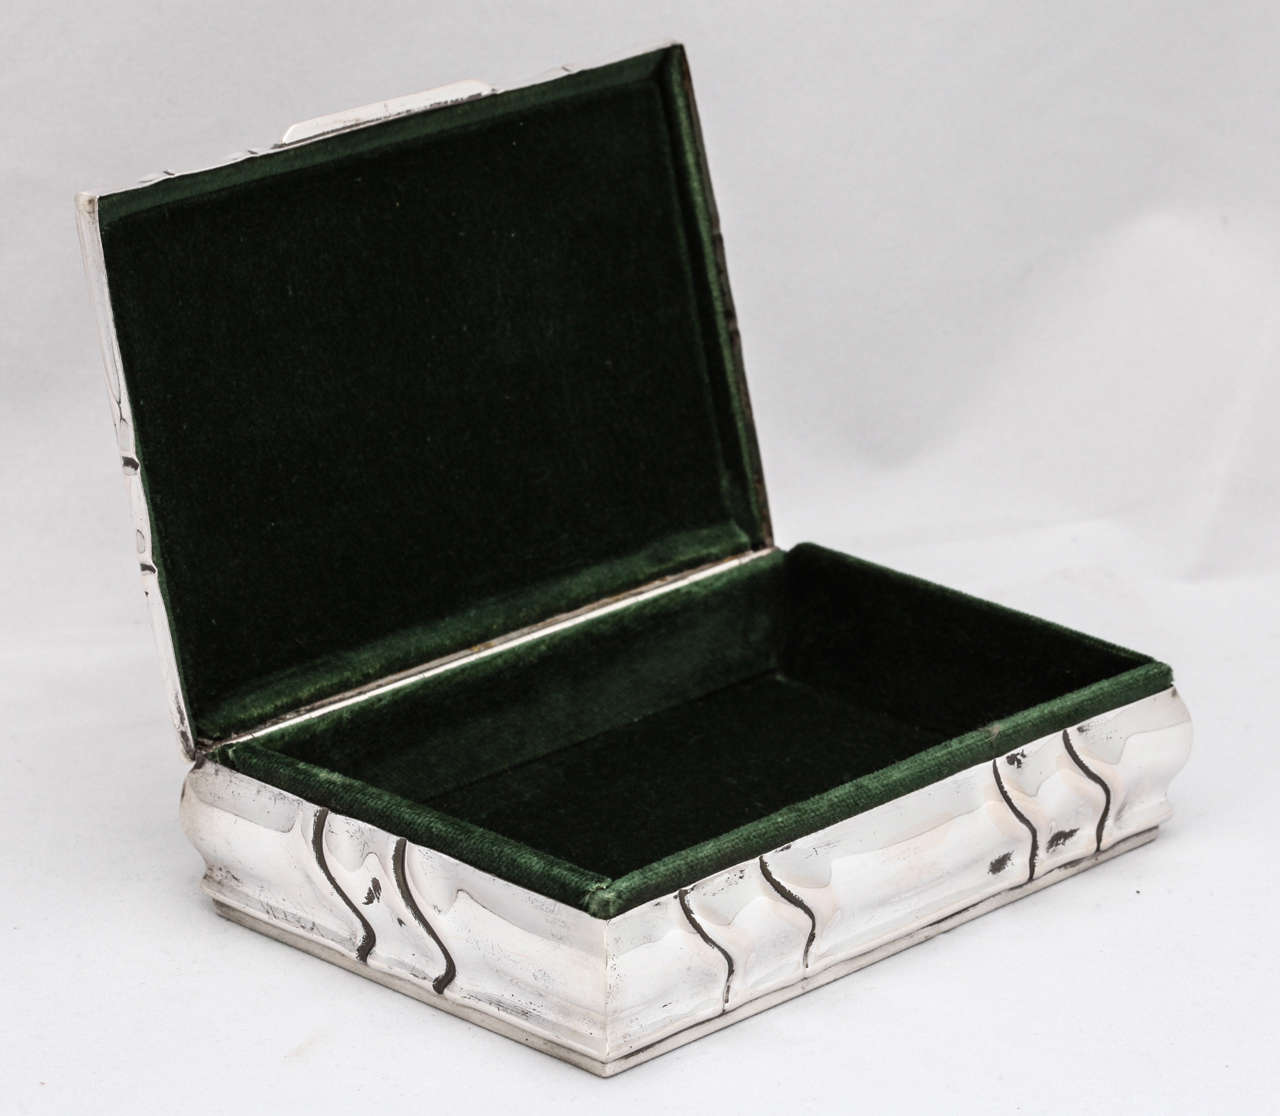 Art Deco Style Jewelry Boxes Art Deco Continental Silver Table Jewelry Box With Hinged Lid